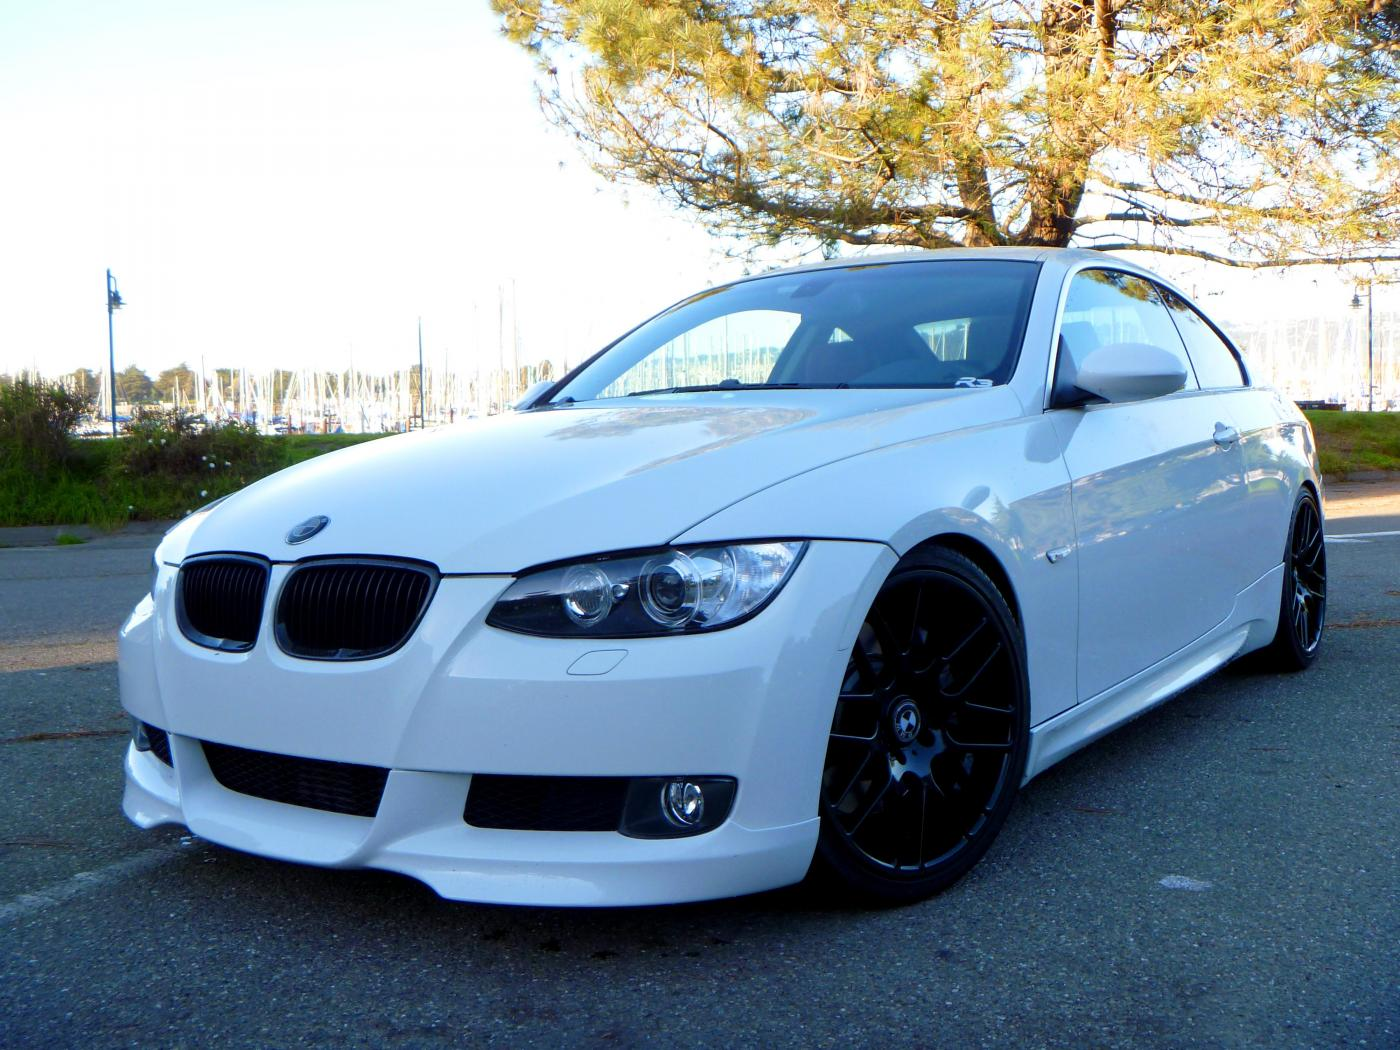 Car Garage For Sale >> RARE 335i BMW Coupe White w/ RED Leather